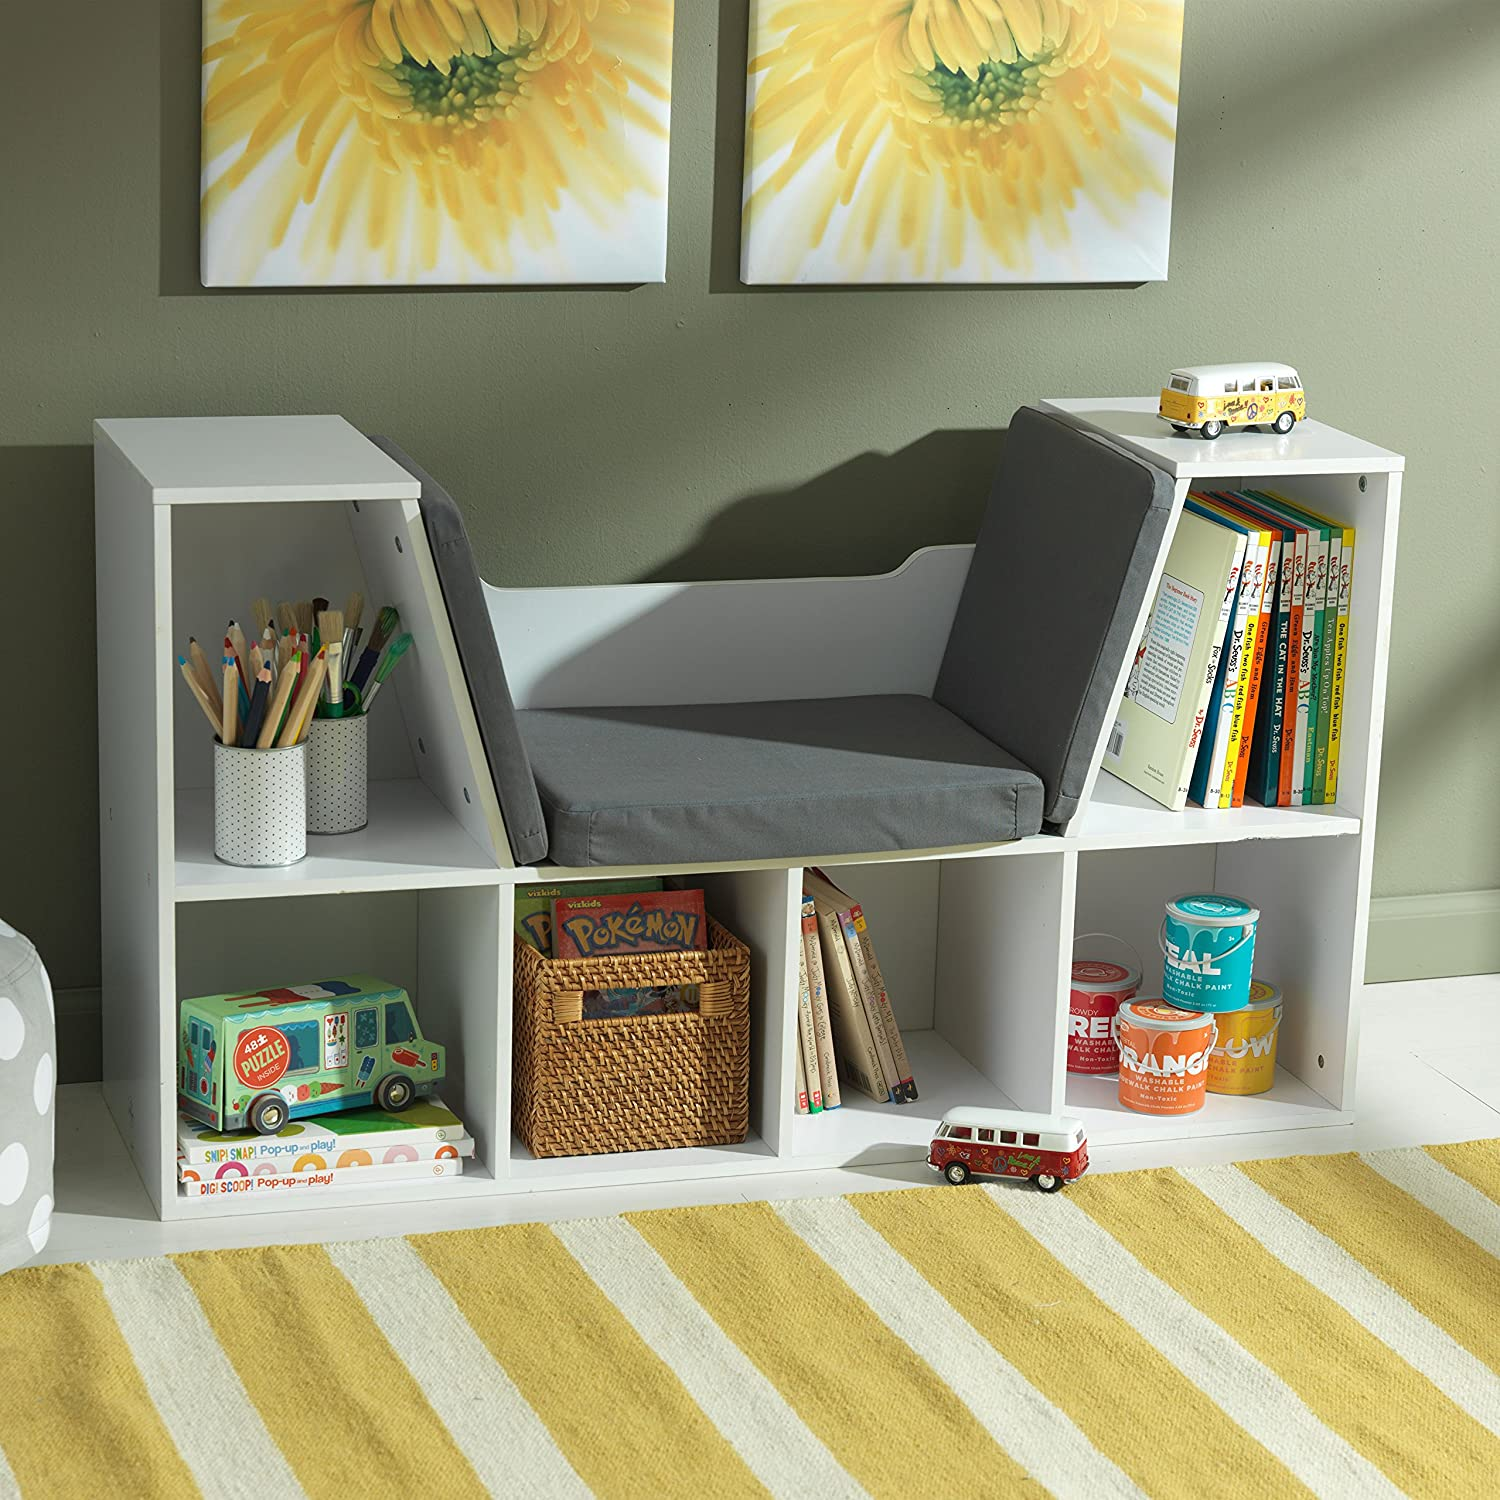 Amazon.com: KidKraft Bookcase with Reading Nook Toy, White: Toys & Games